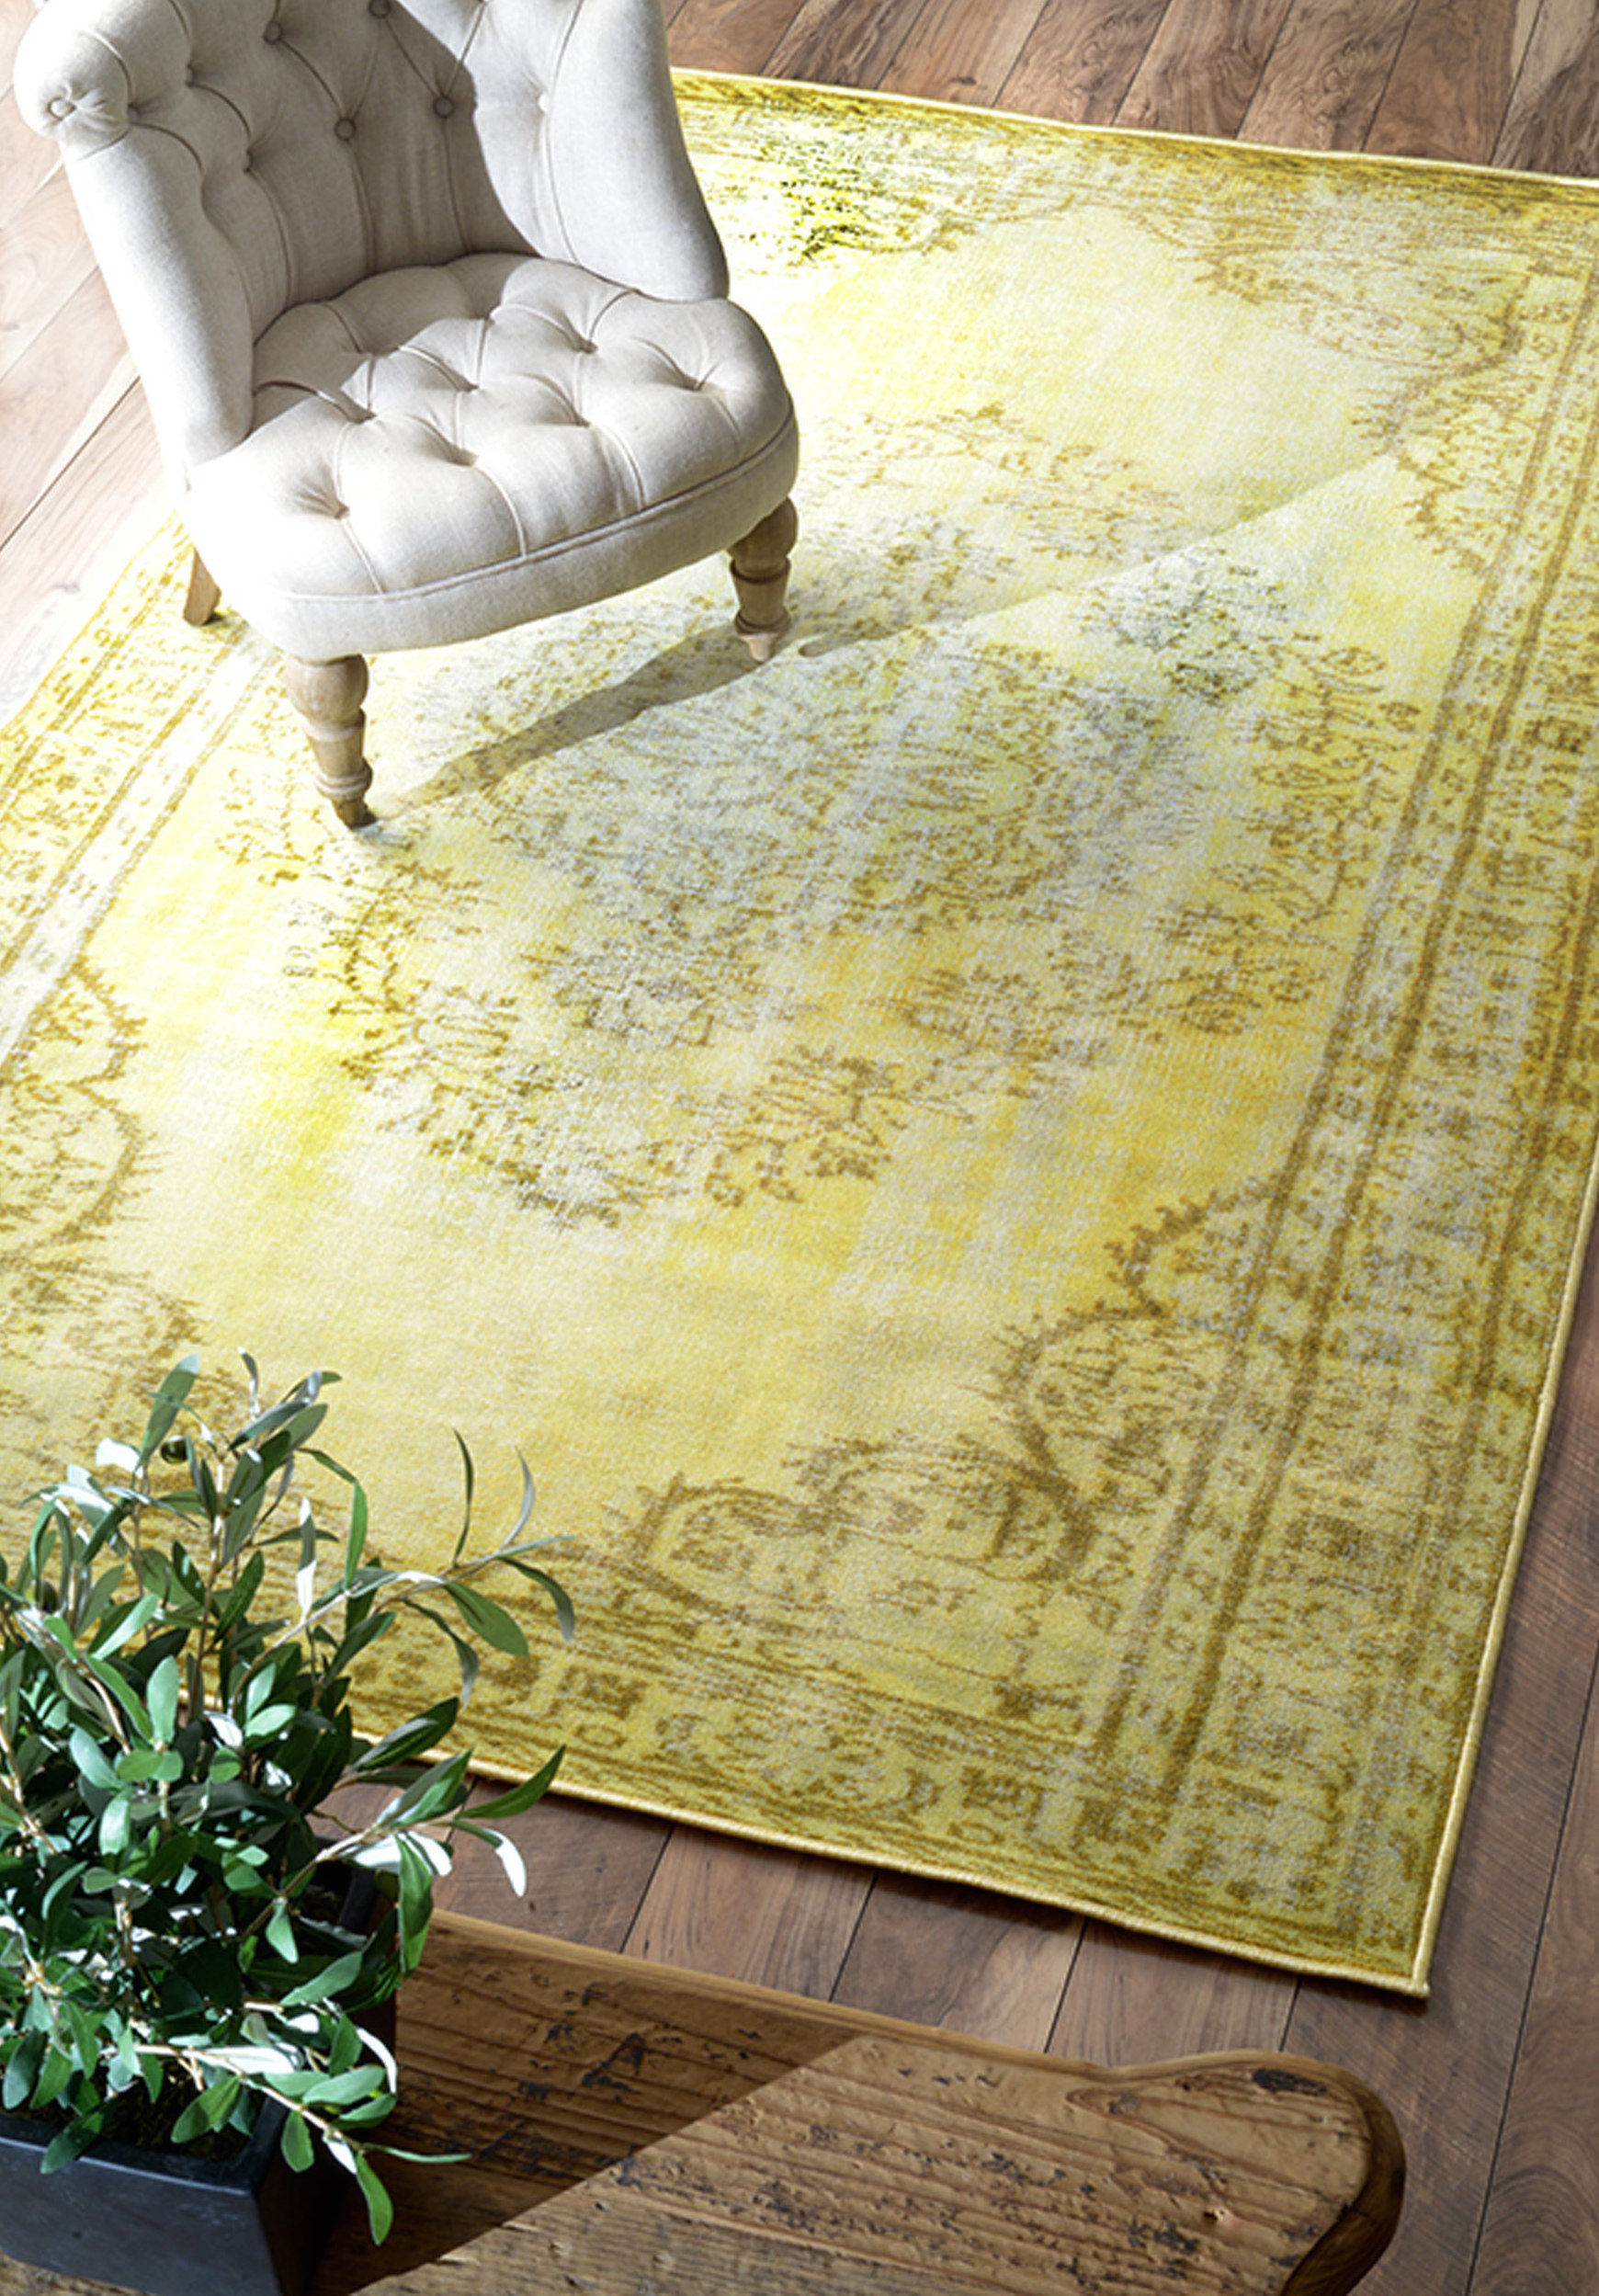 Vintage yellow nuLOOM rug from Overstock  25 Yellow Rug and Carpet Ideas to Brighten up Any Room Vintage yellow nuLOOM rug from Overstock1